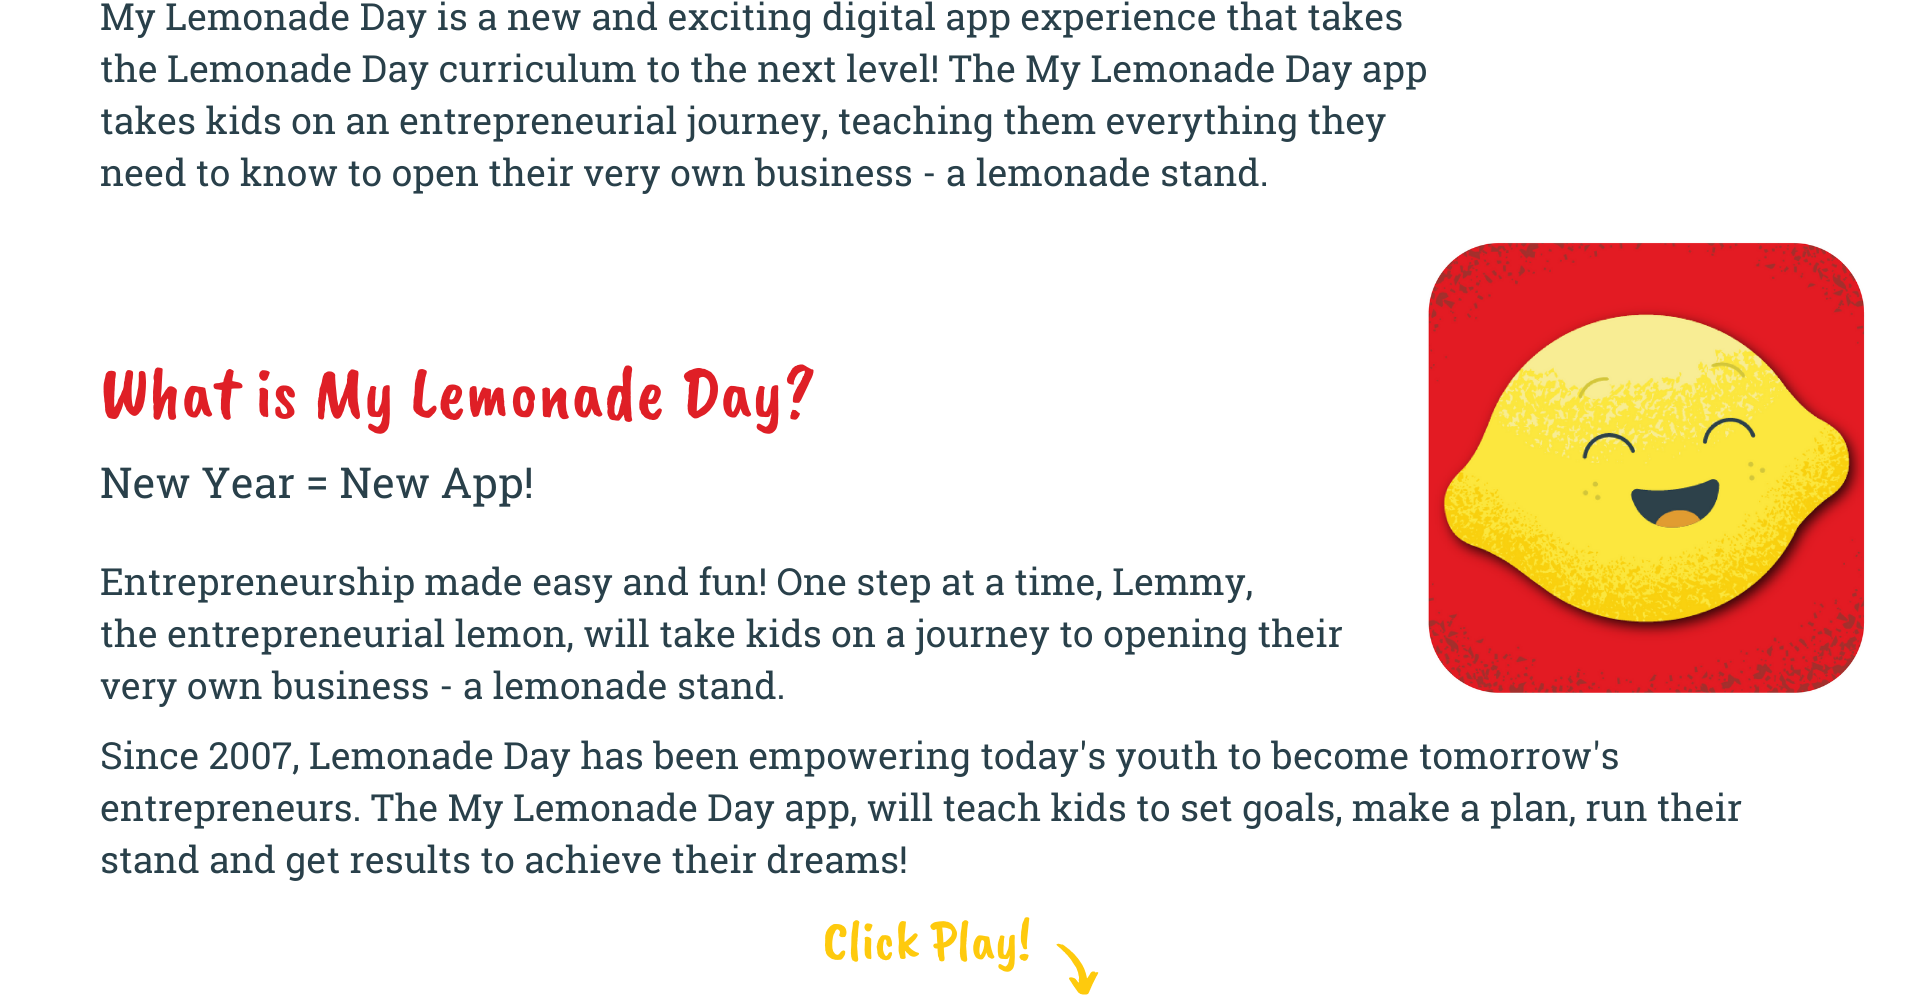 My Lemonade Day is a new and exciting digital app experience that takes the Lemonade Day curriculum to the next level! The My Lemonade Day app takes kids on an entrepreneurial journey, teaching them everything they need to know to open their very own business - a lemonade stand. Entrepreneurship made easy and fun! One New Year = New App! What is My Lemonade Day? step at a time, Lemmy, the entrepreneurial lemon, will take kids on a journey to opening their very own business - a lemonade stand.  Since 2007, Lemonade Day has been empowering today's youth to become tomorrow's entrepreneurs. The My Lemonade Day app, will teach kids to set goals, make a plan, run their stand and get results to achieve their dreams!